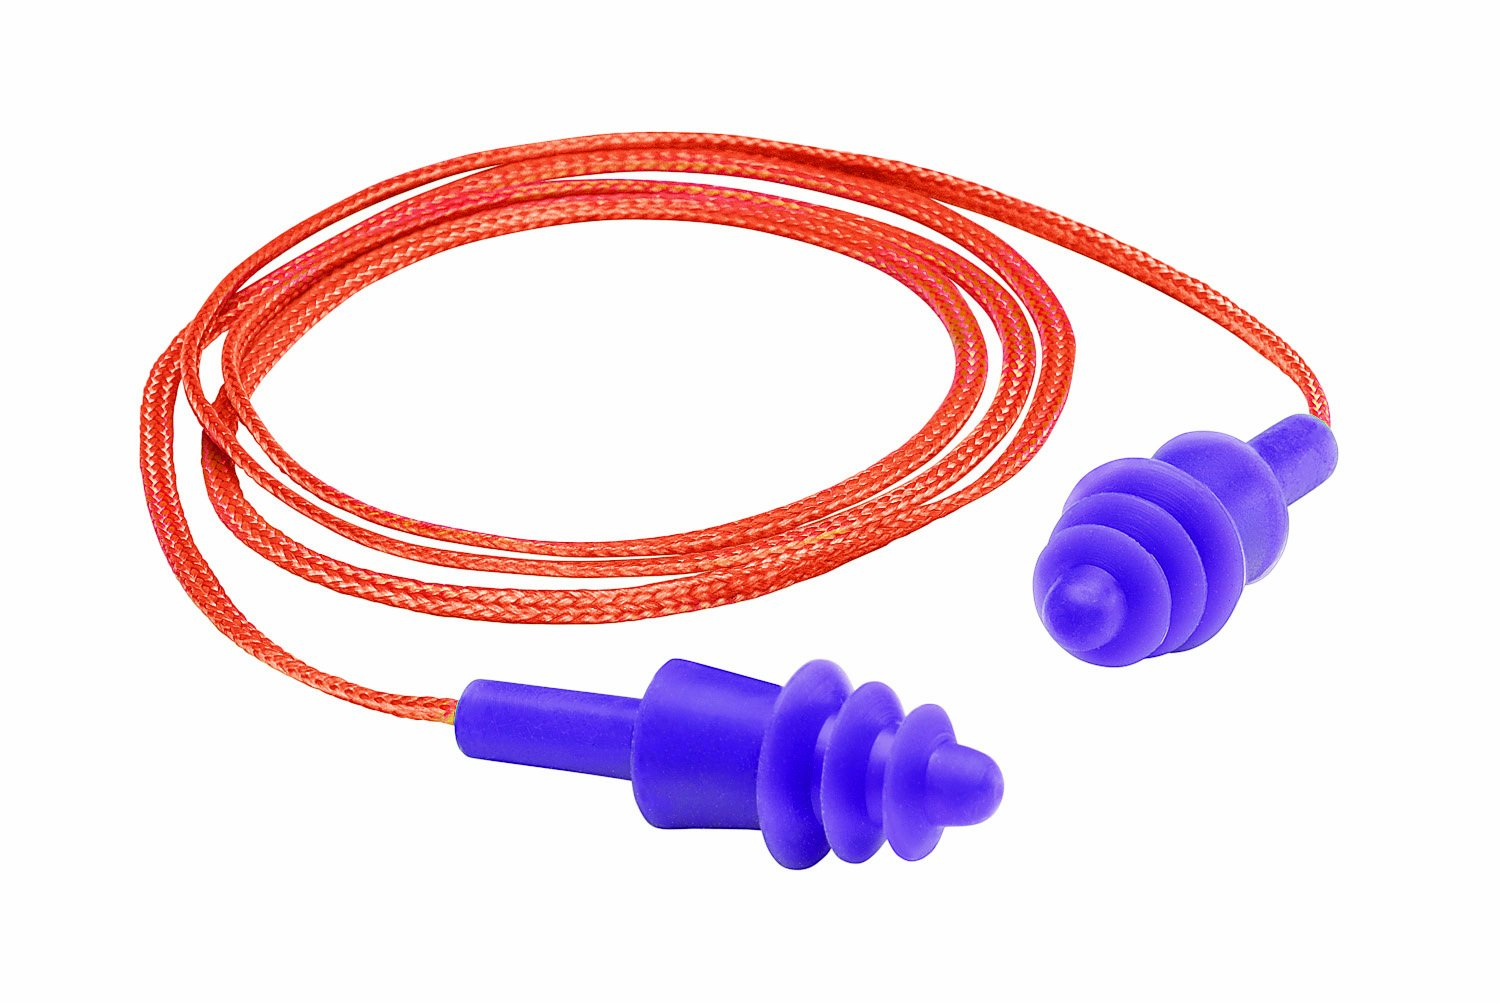 Gateway Safety 93012 Twisters Silicone Corded Reusable Triple-Flanged Earplug, Purple (Box of 100) by Gateway Safety (Image #1)